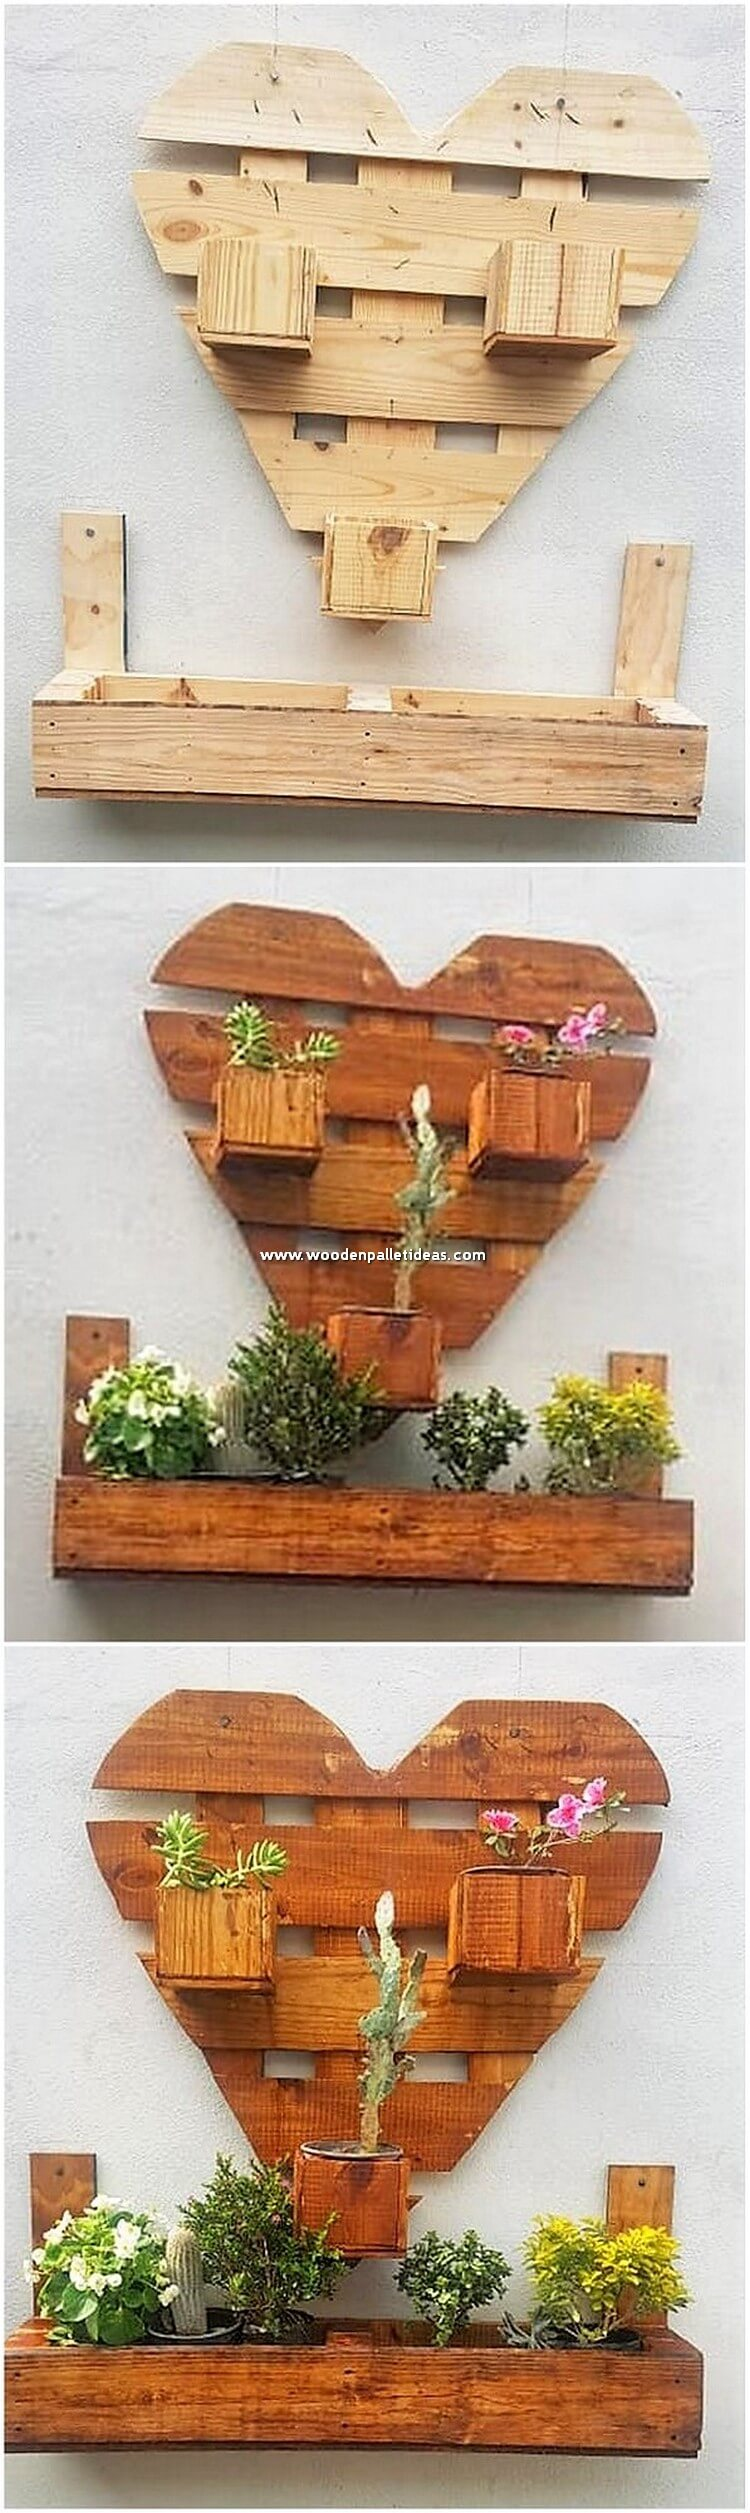 Heart Shape Pallet Wall Planter